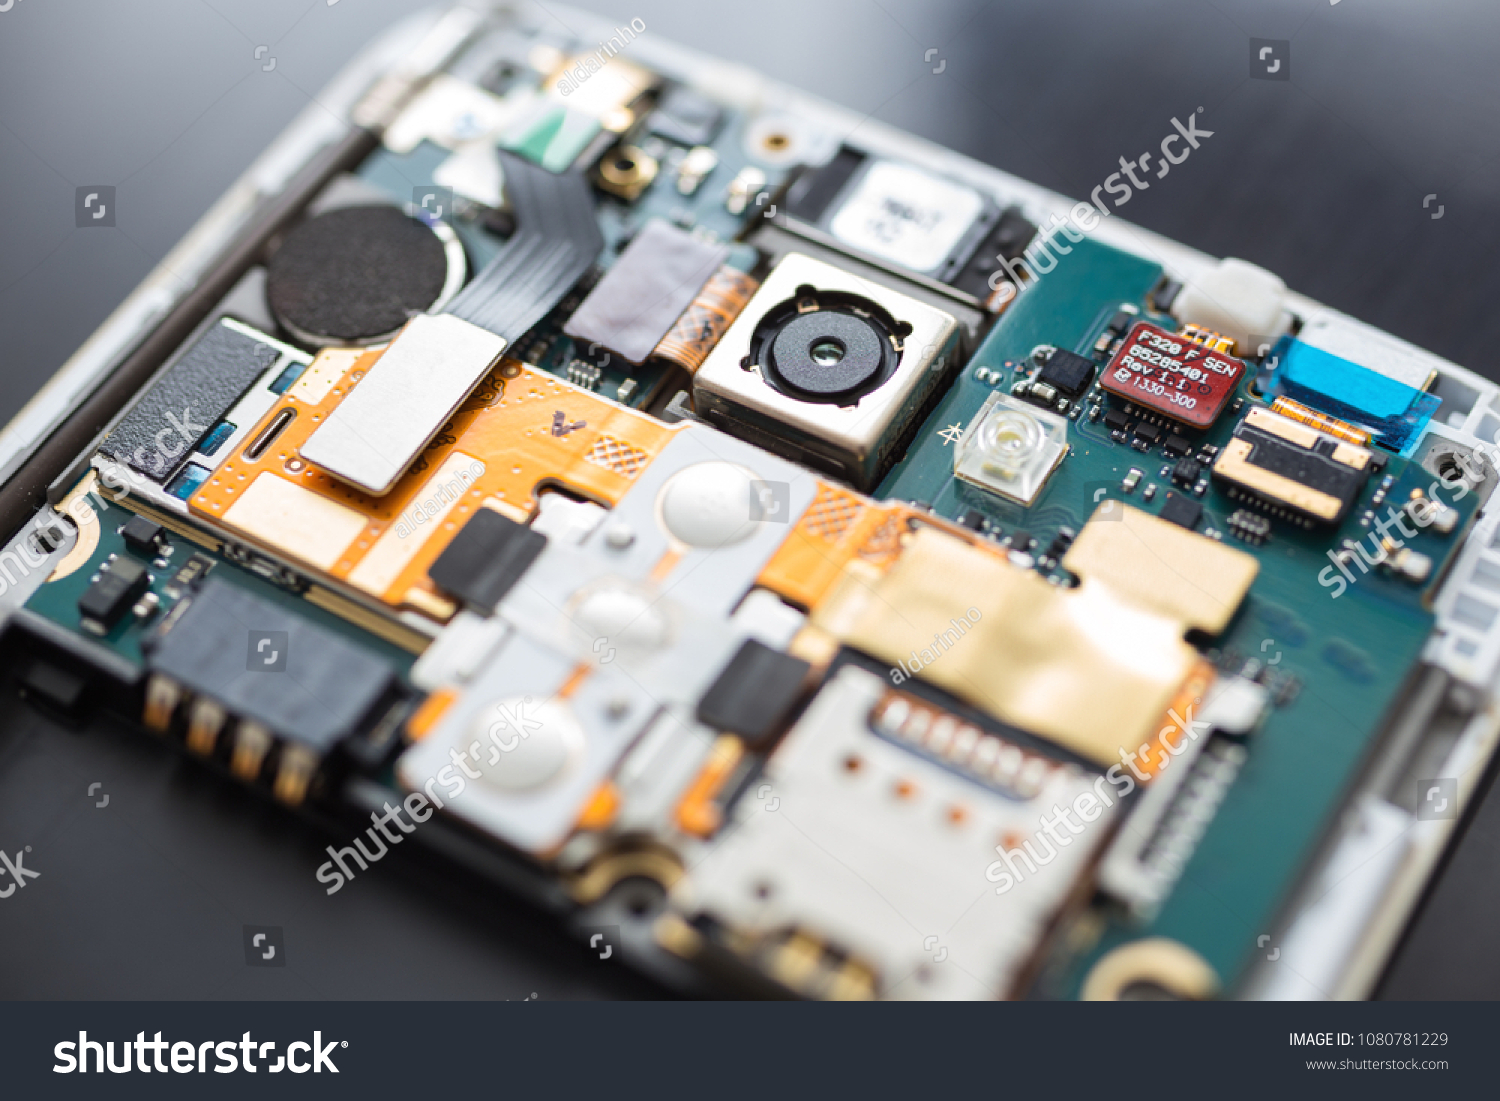 Makati Philippines April 30 2018 Disassembled Stock Photo Edit Now Smart Phone Circuit Board With Details Like Sim Card And Other Image Mobile Or Smartphone On Repair